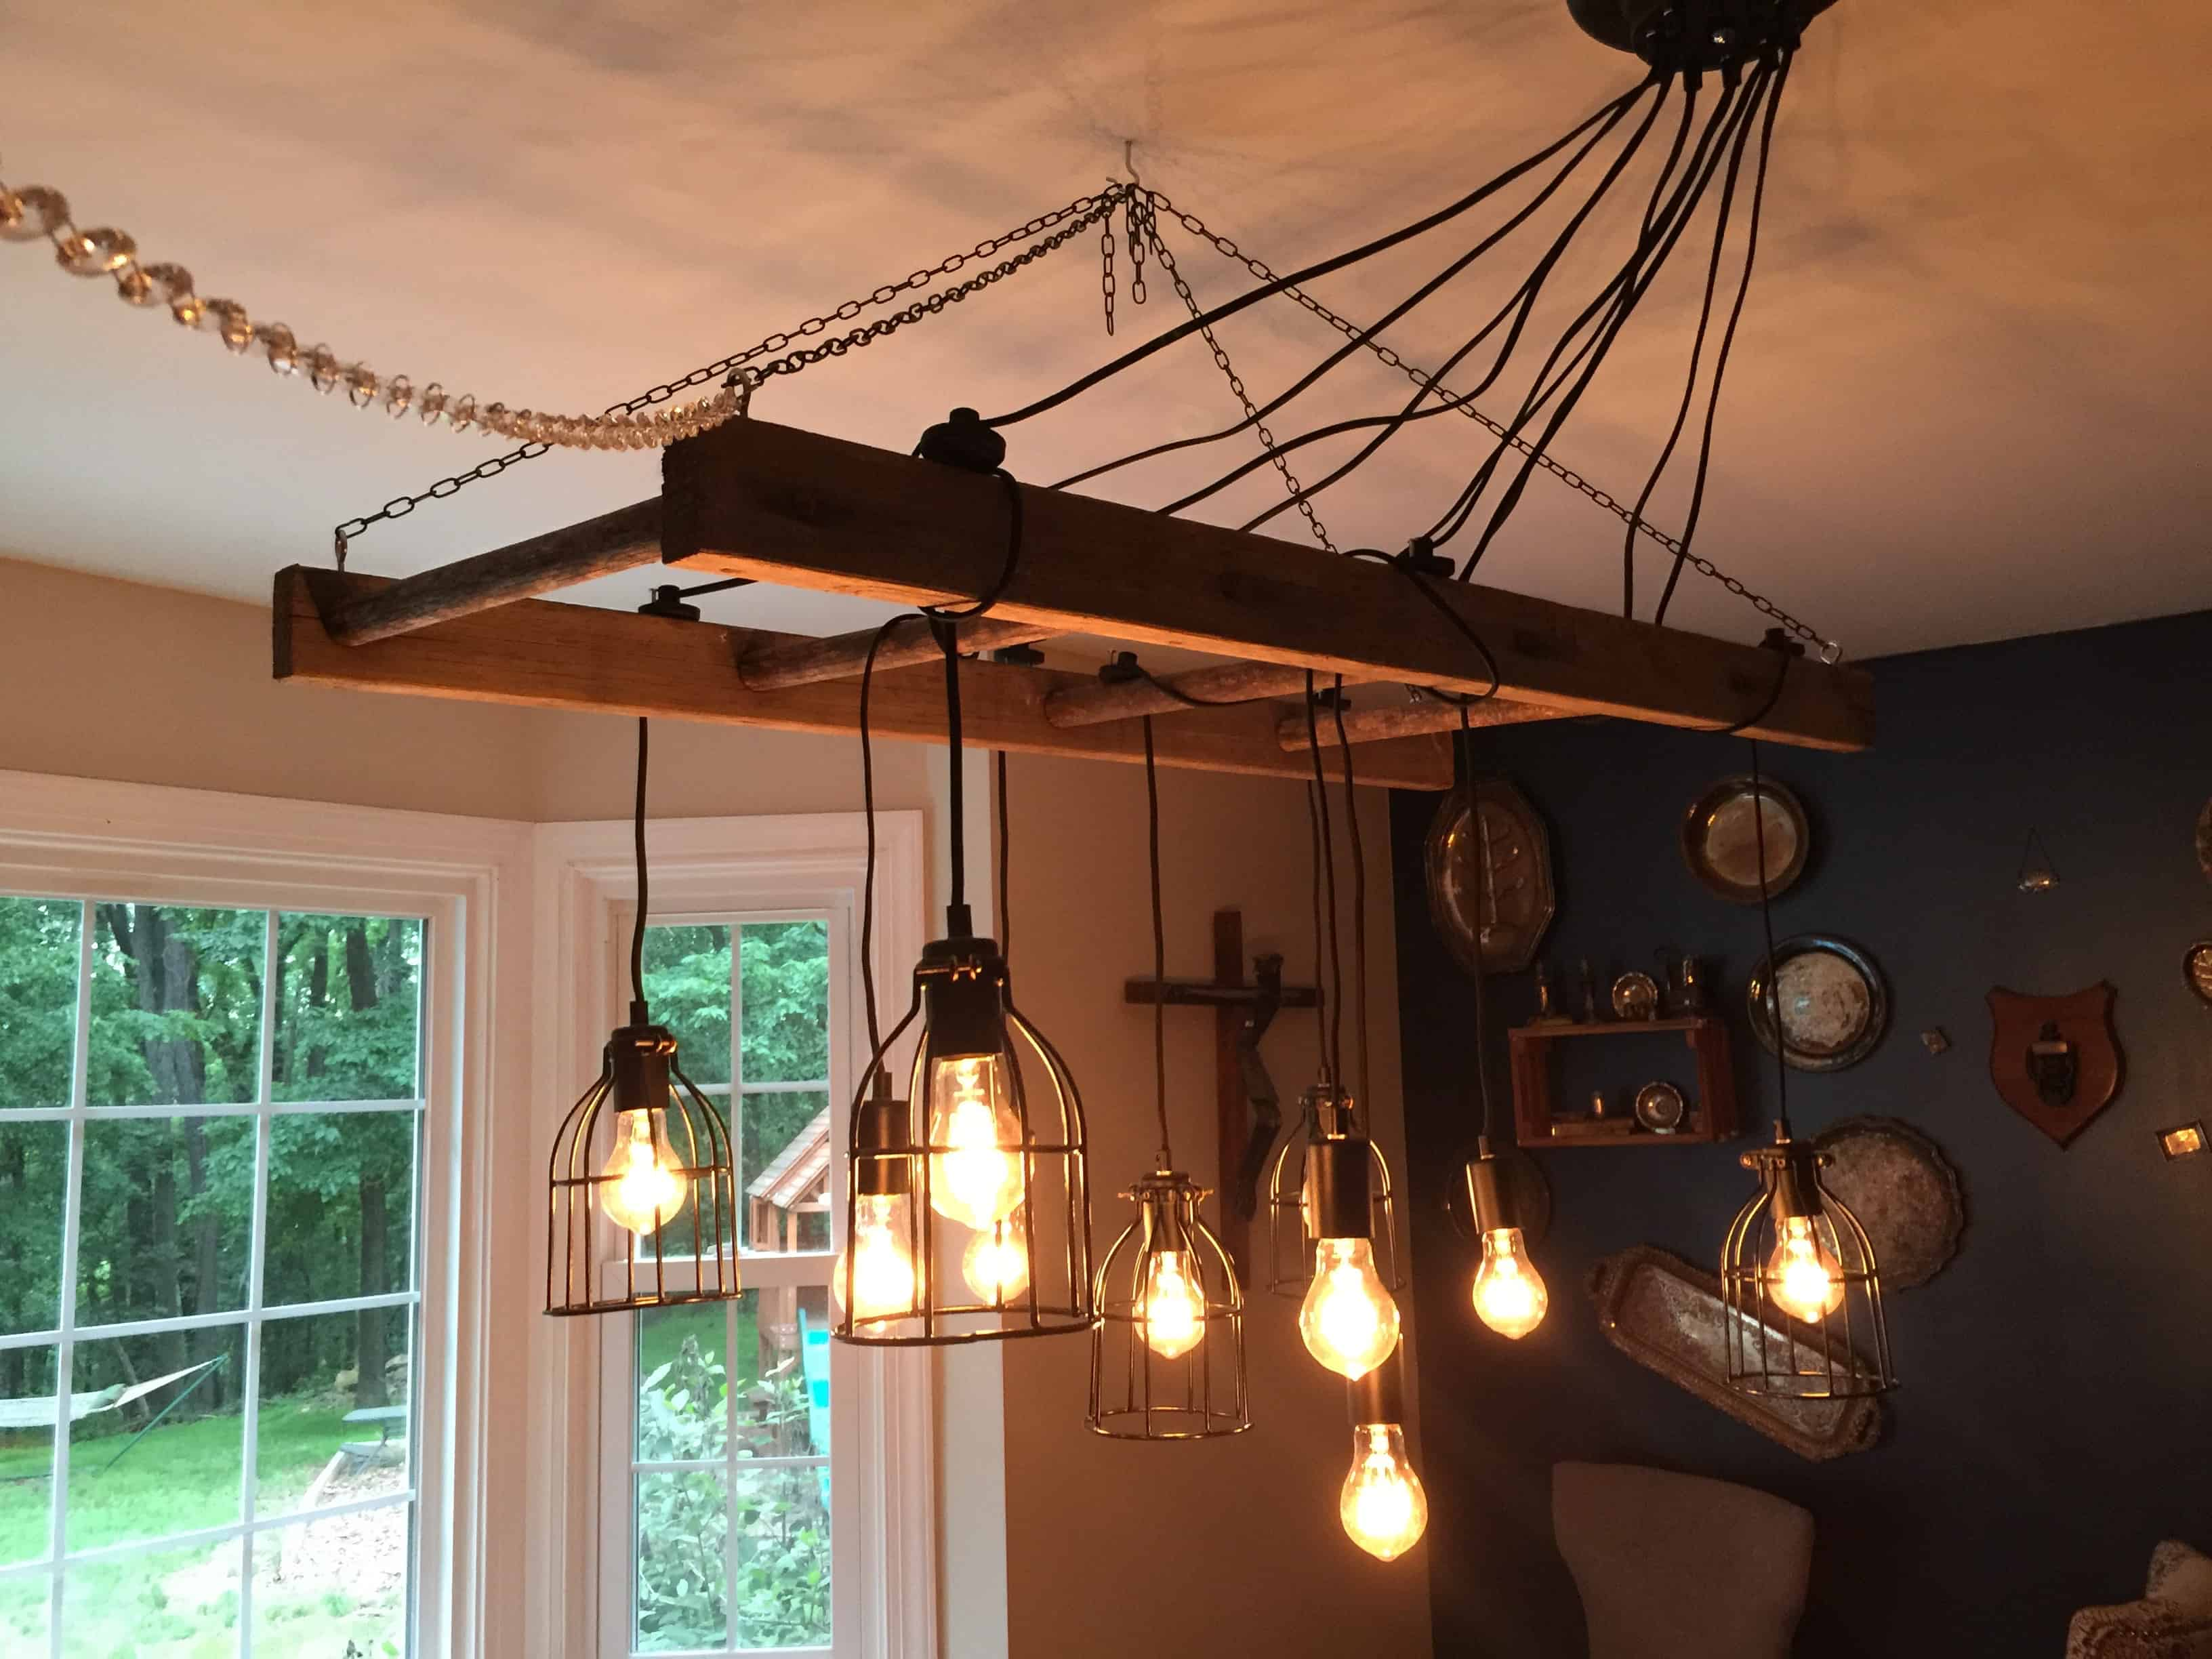 Saved by Scottie rustic chandelier lights on no crystals